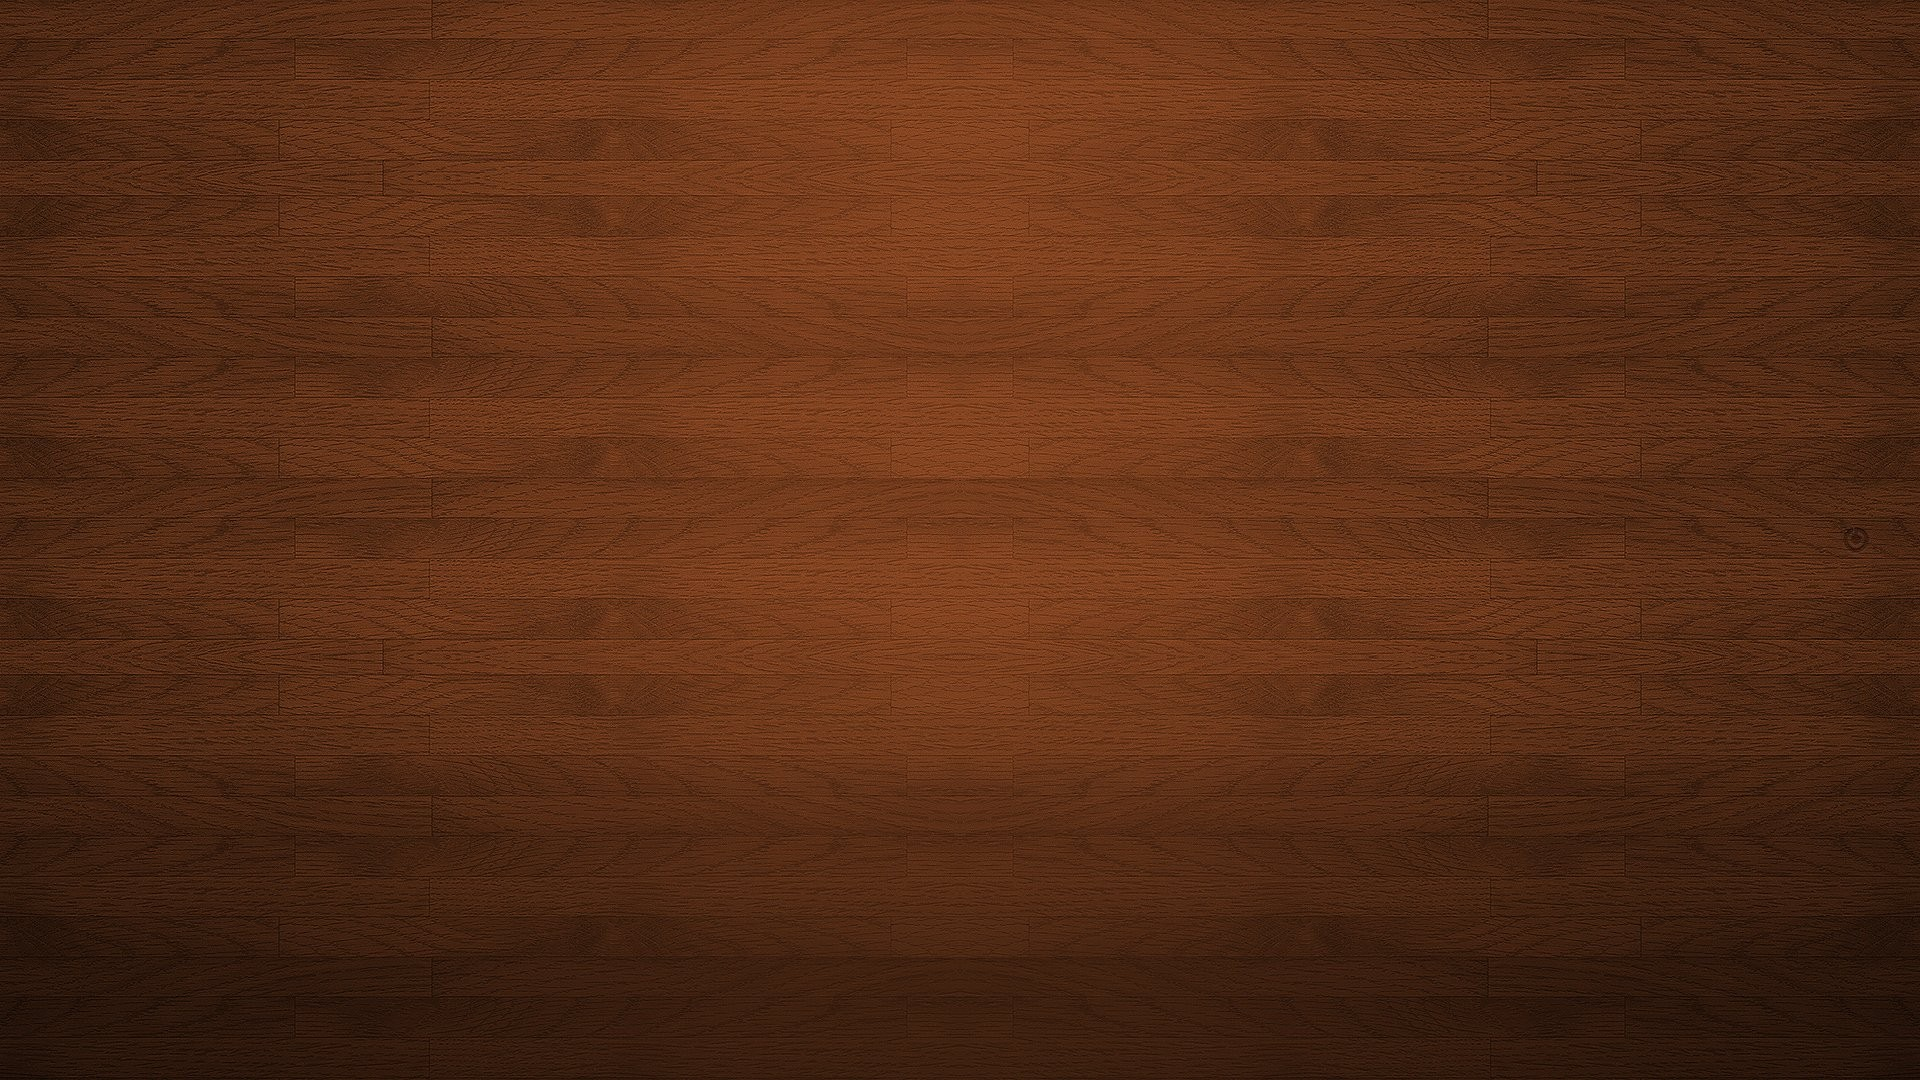 Glock Iphone Wallpaper Powerpoint Background 183 ① Download Free Awesome High